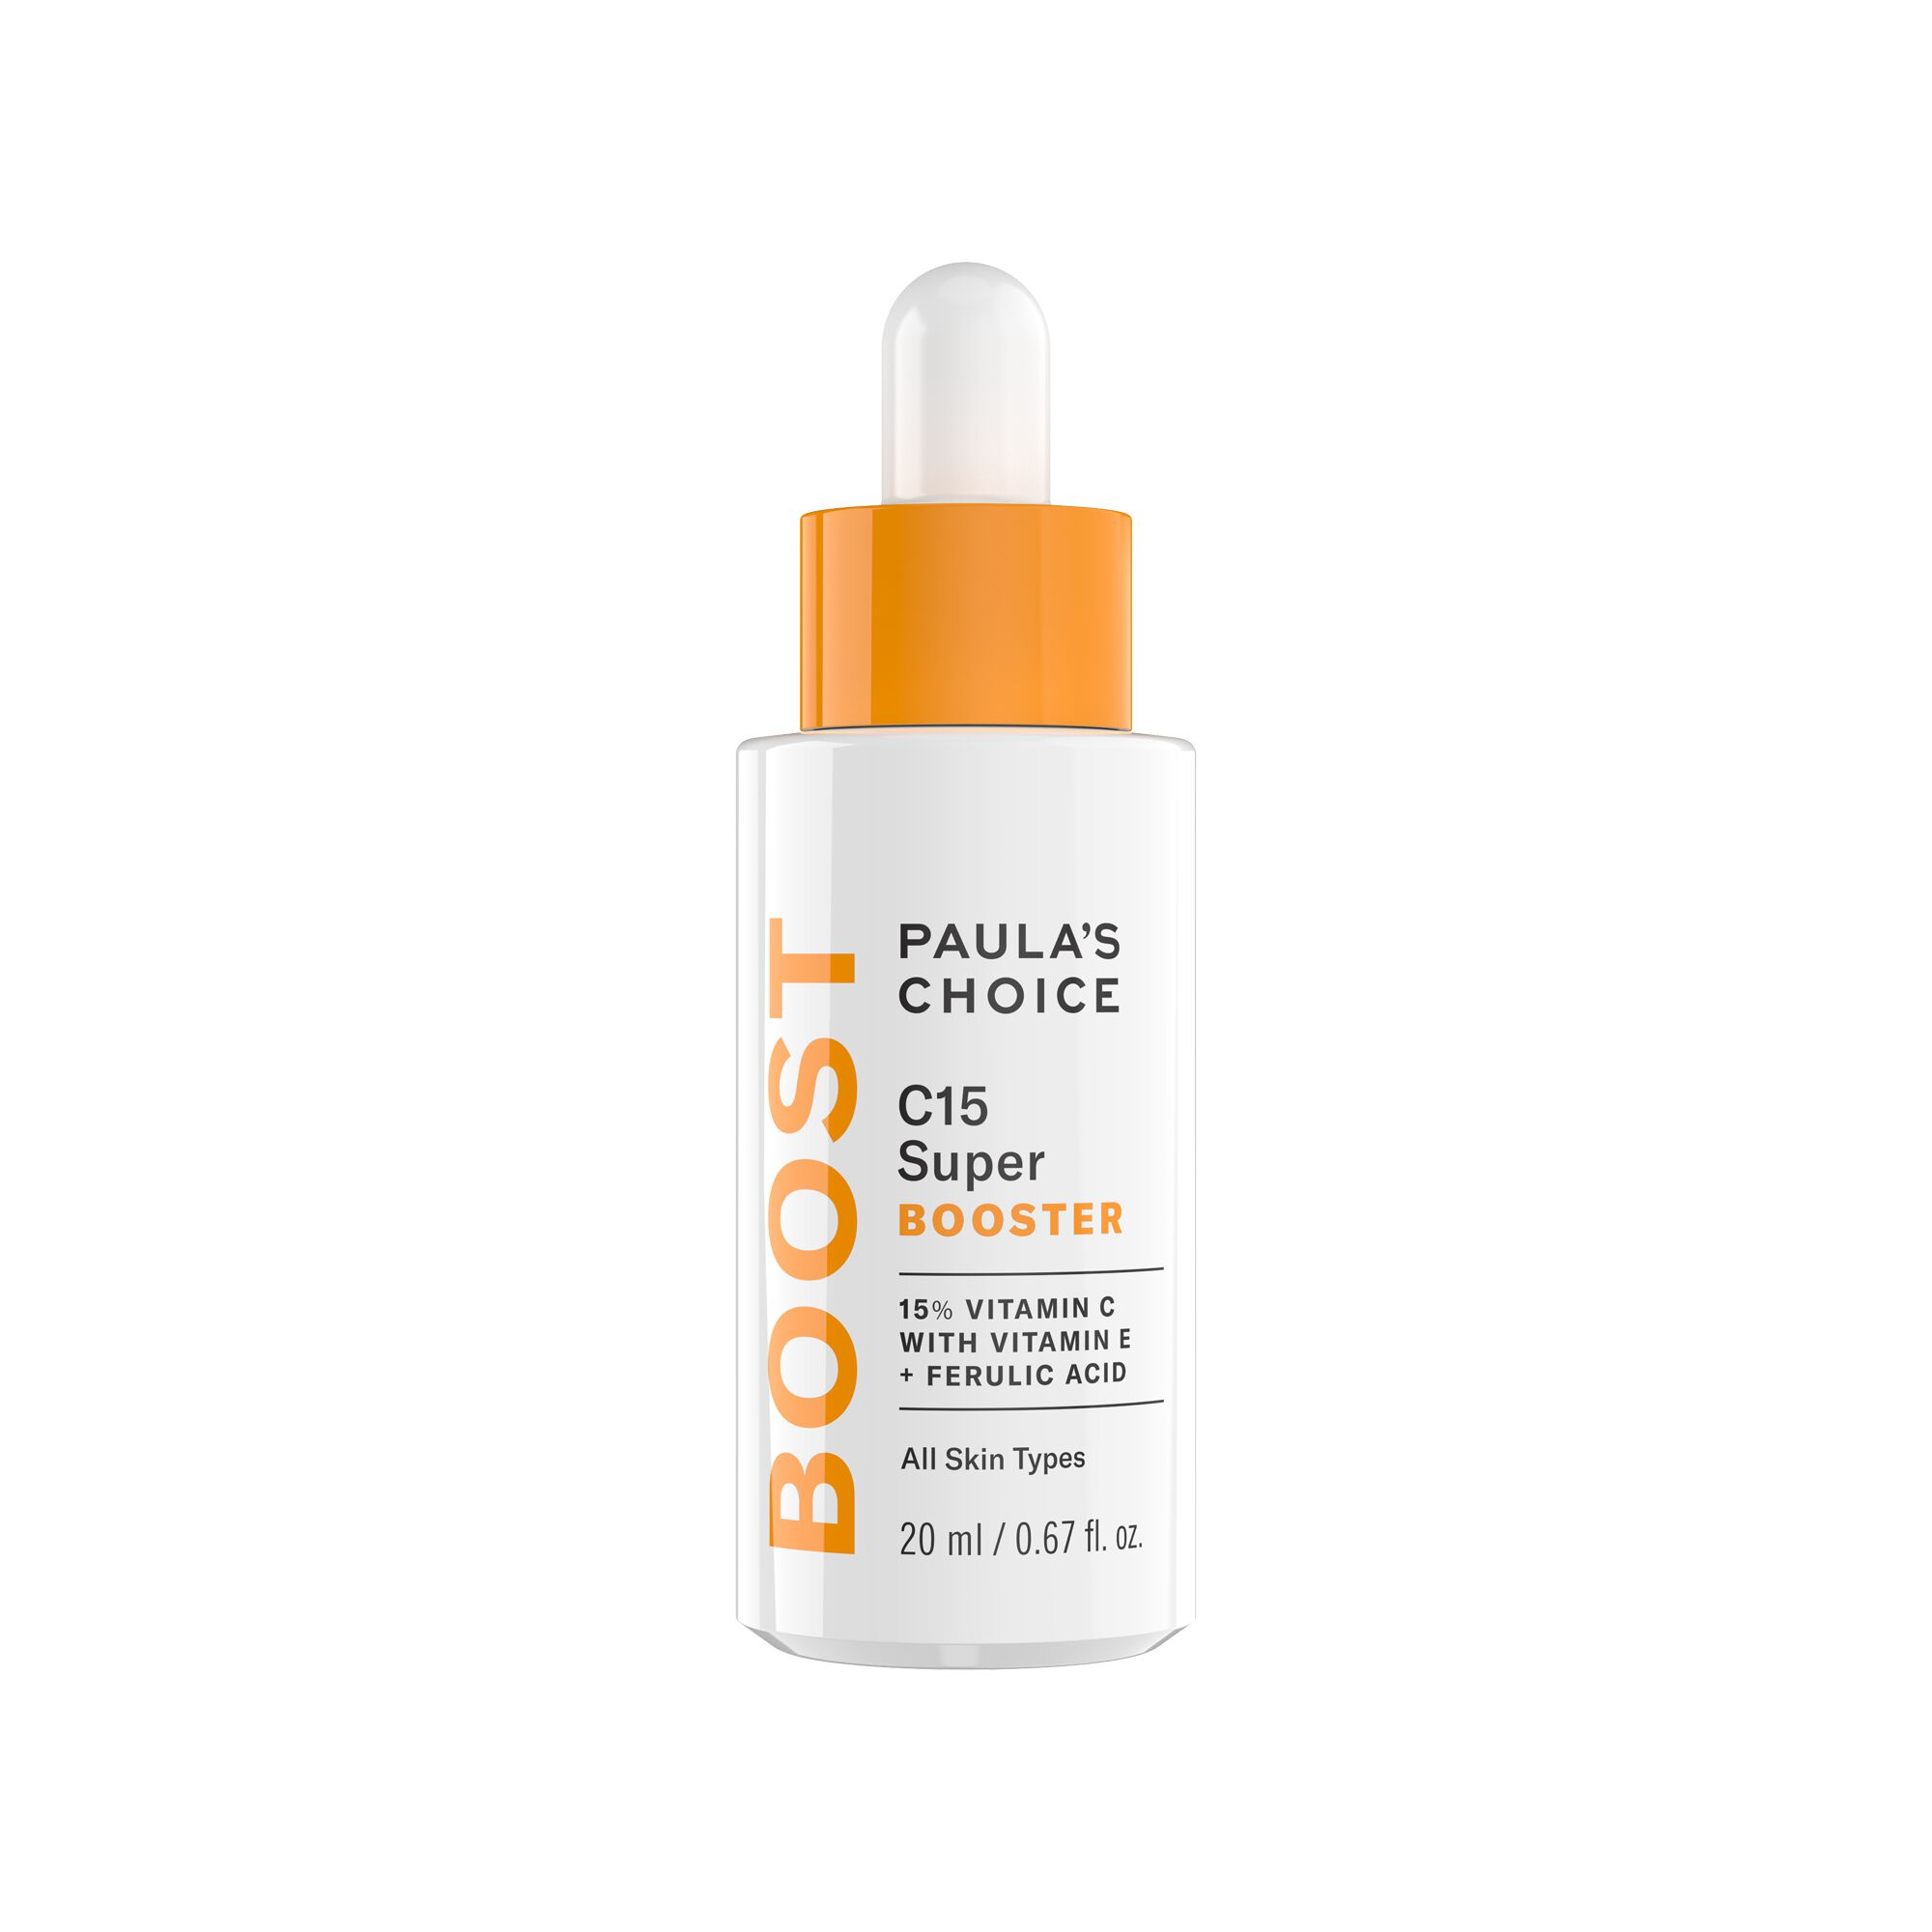 Paula's choice c15 vitamin c serum booster